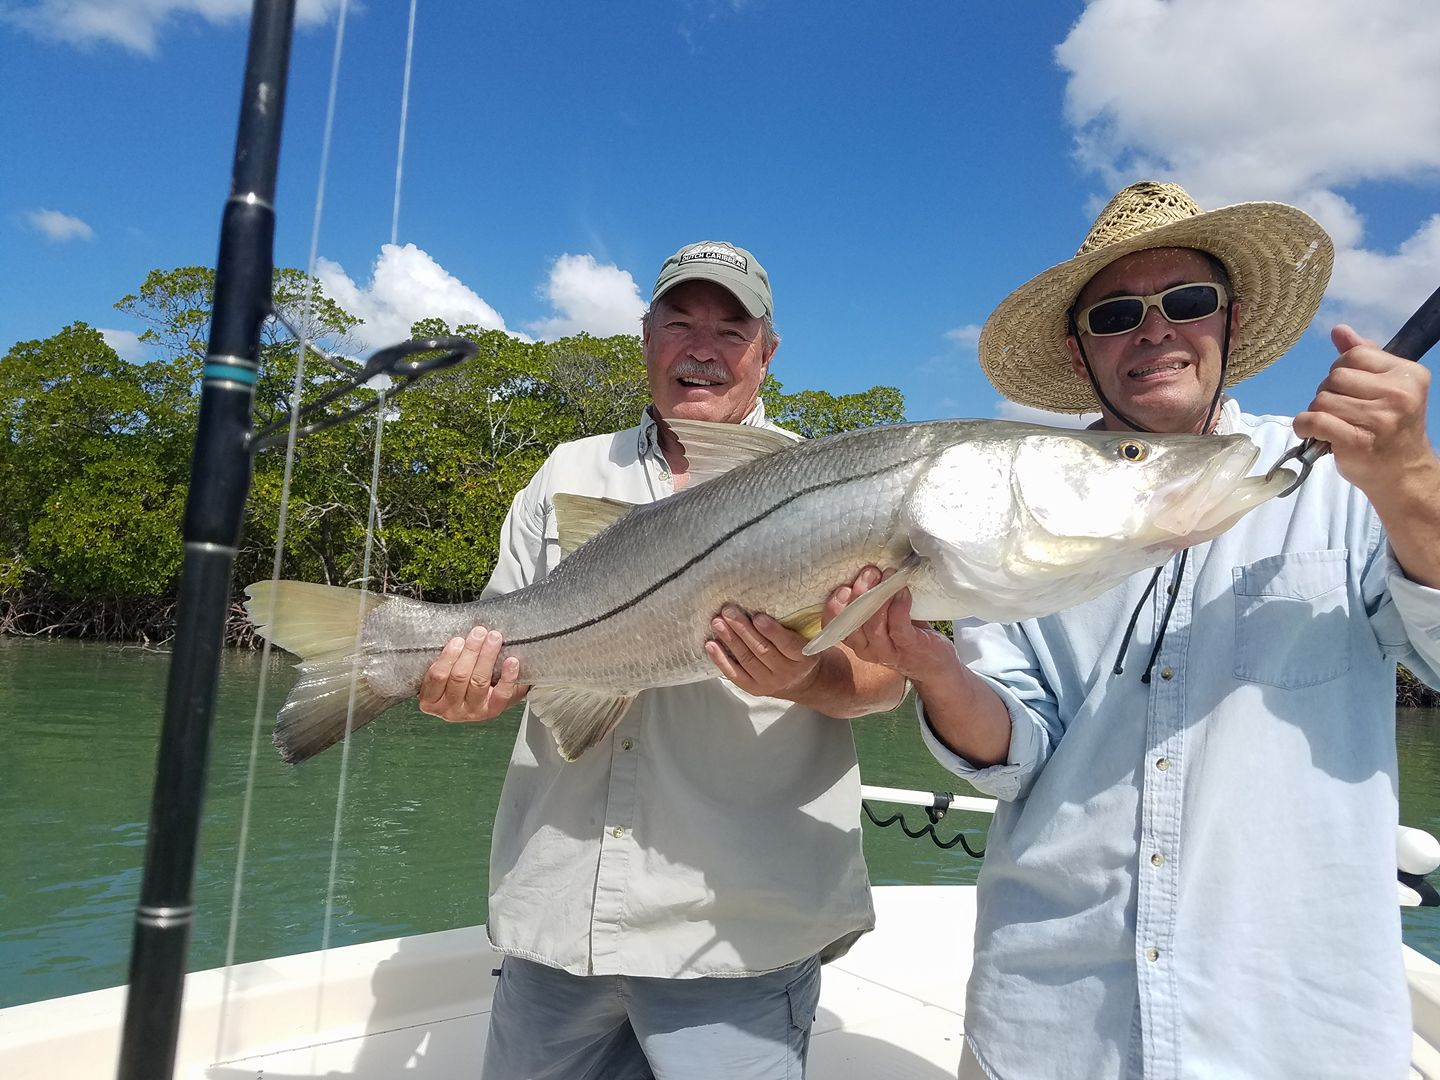 Naples, FL - Home of Big Snook Fishing